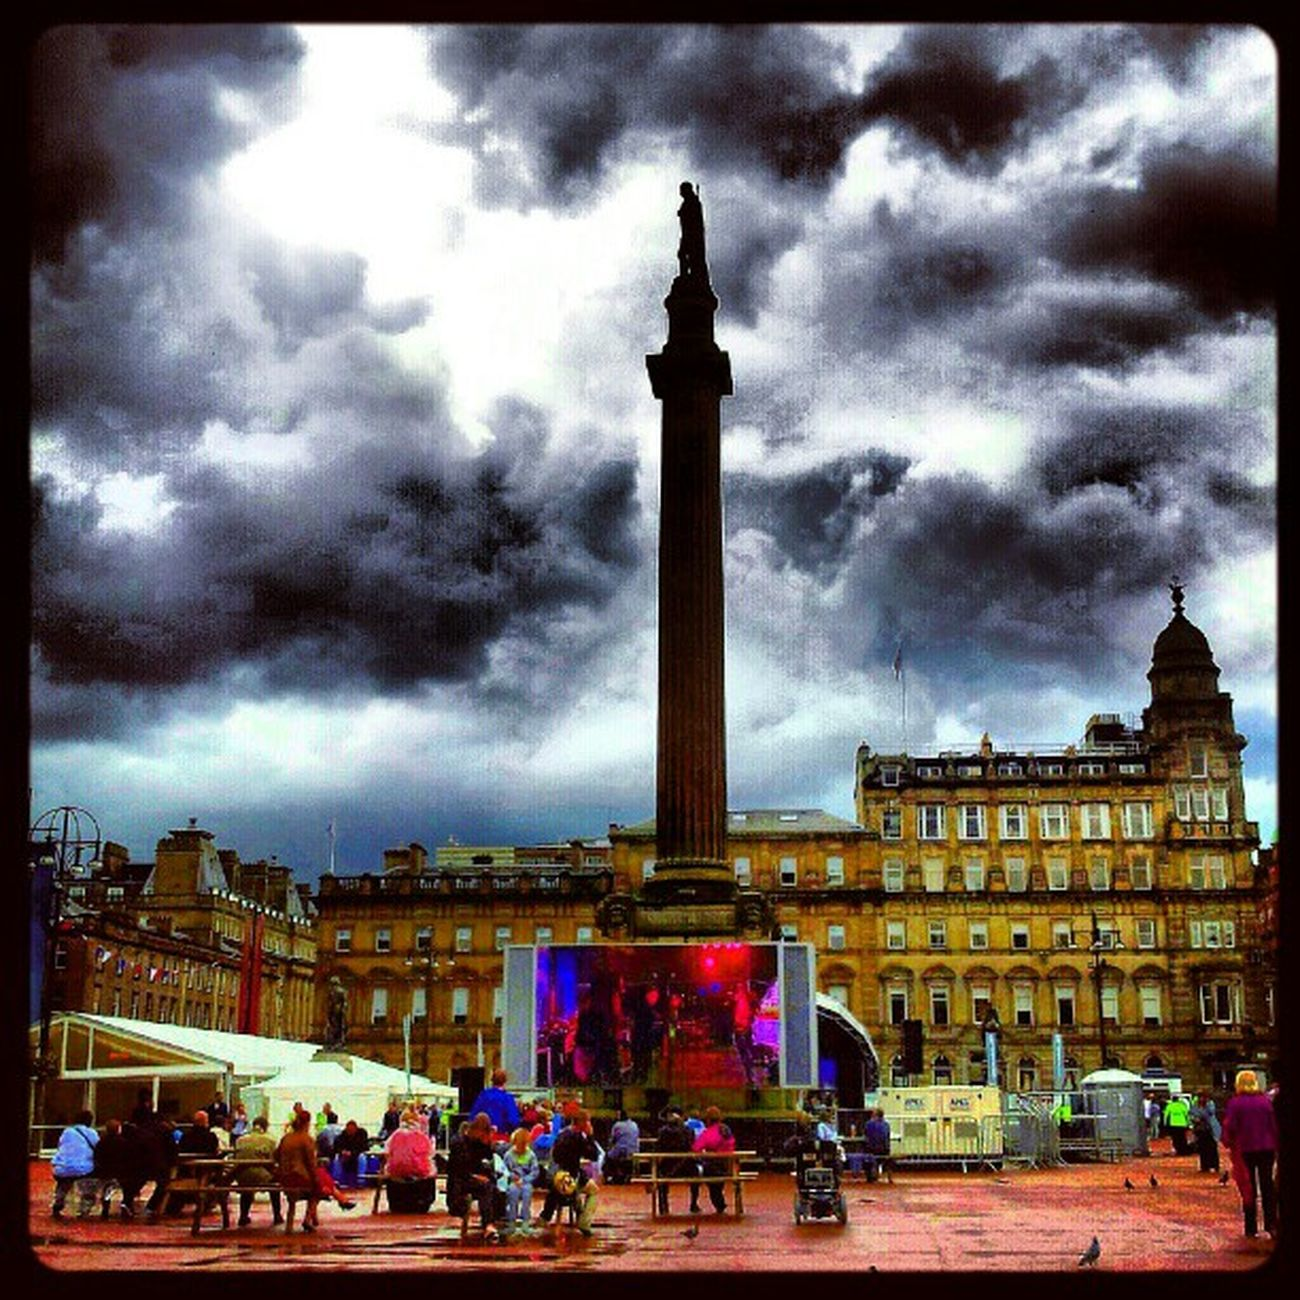 'George Square for Queen's visit' Georgesquare Glasgow  Scotland Monument Memorial GiantTV buildingporn Buildings Architecture architectureporn Cloudporn sky skyporn igscout igscotland igtube igaddict Igers igdaily haggismunchers most_deserving Tagstagram instagood instamob instagrammers PicOfTheDay bestoftheday Primeshots